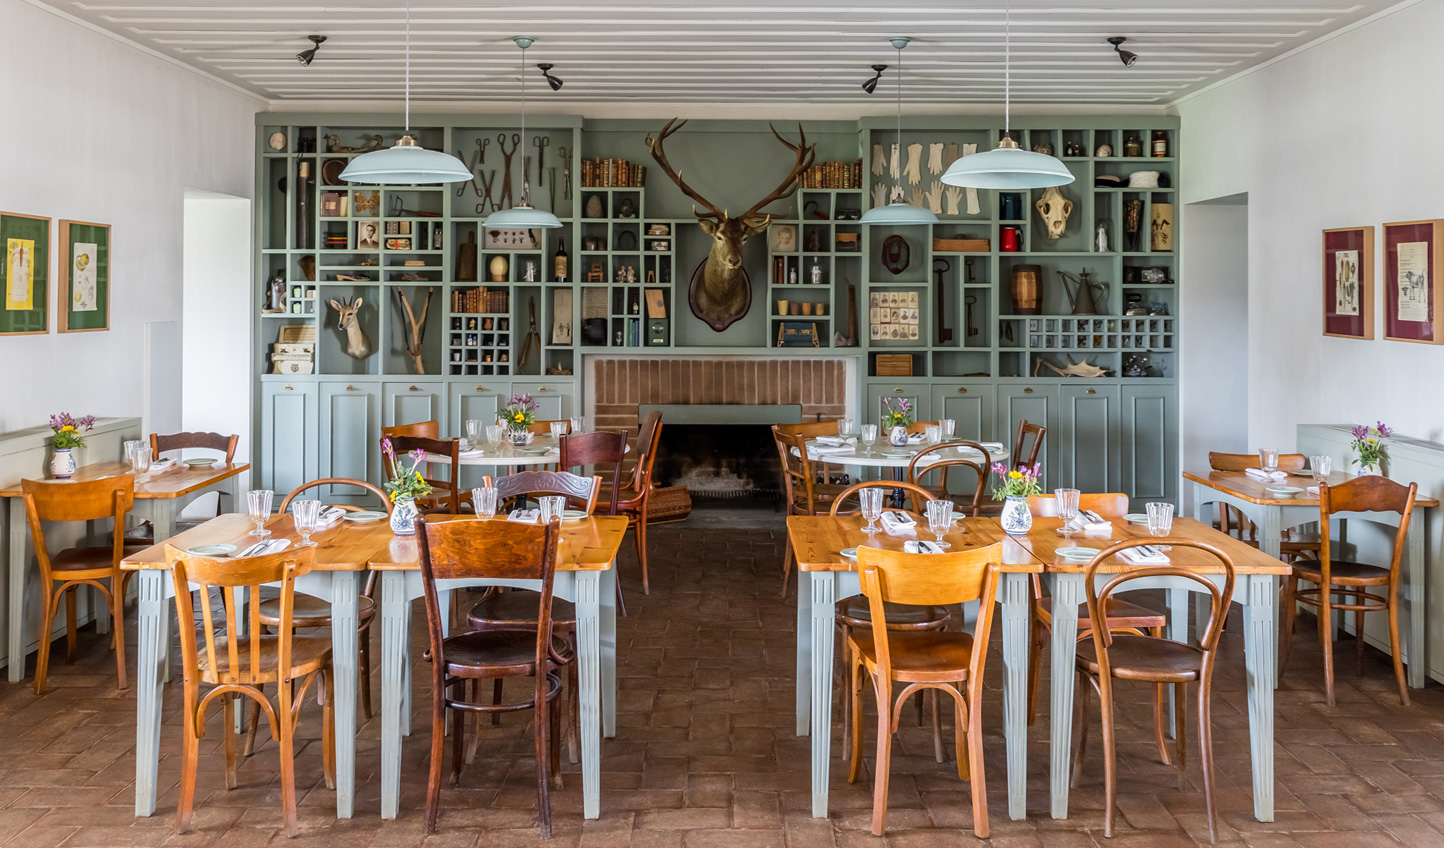 Savour seasonal and organic produce in the farm-to-table restaurant